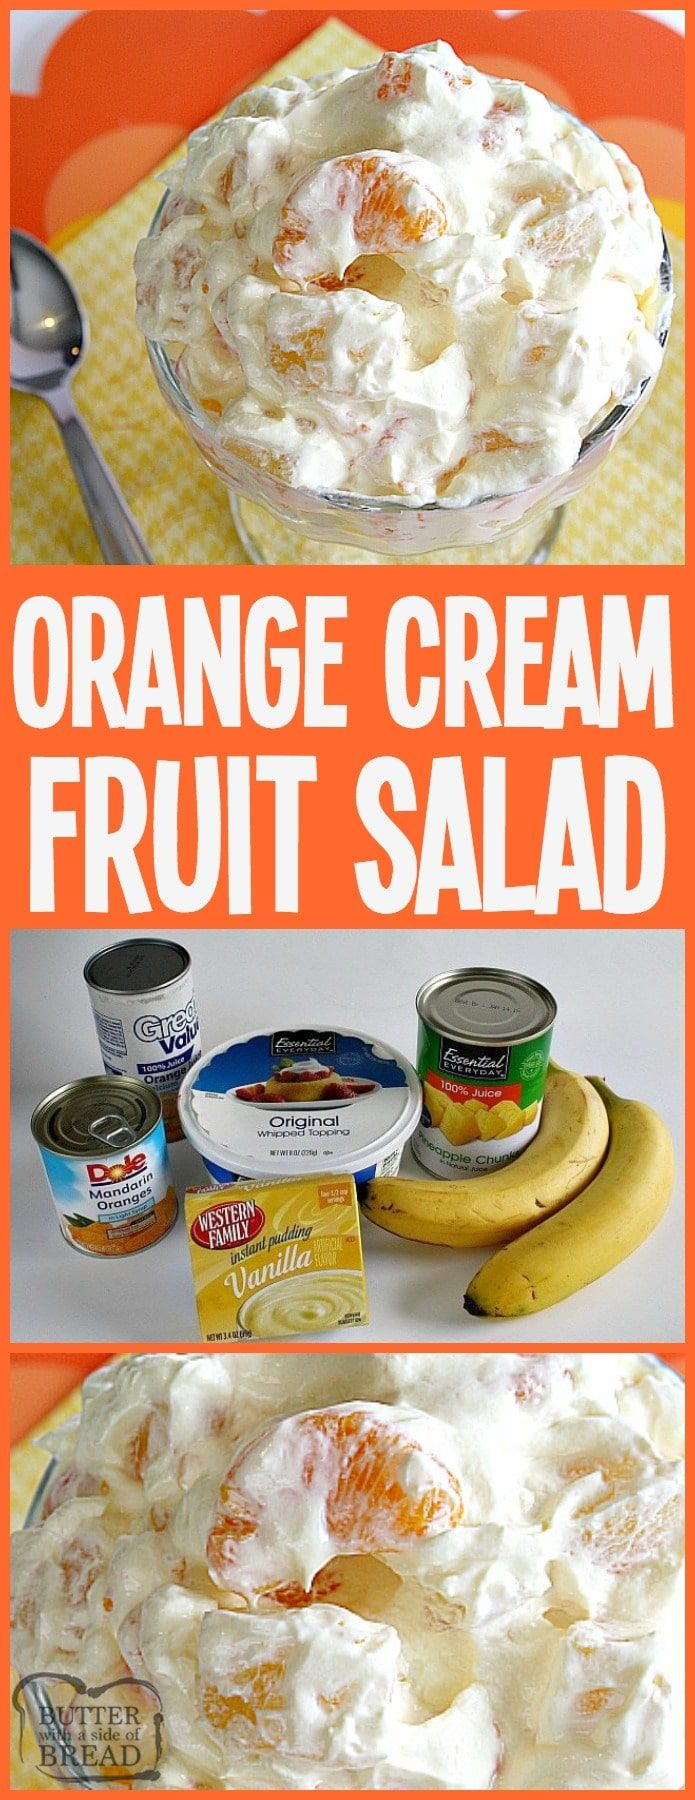 Orange Cream Fruit Salad is a lovely fruit salad filled with oranges, pineapple and bananas with a sweet orange cream mixed in! Perfect to go alongside Easter dinner!  #salad #fruit